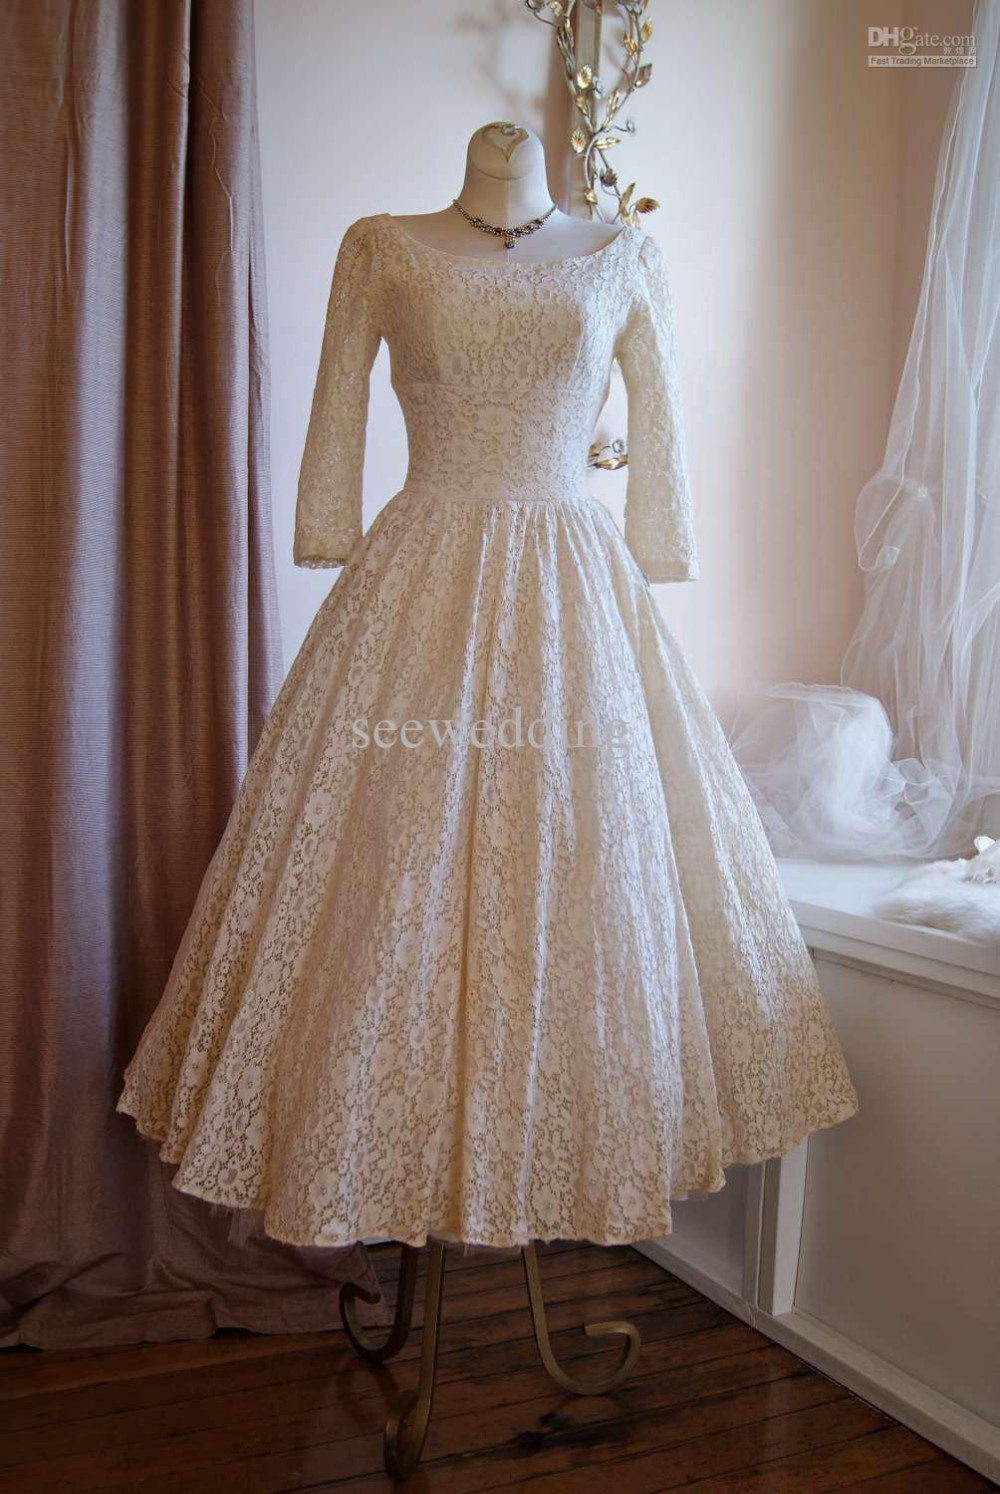 A long sleeve dress 50s